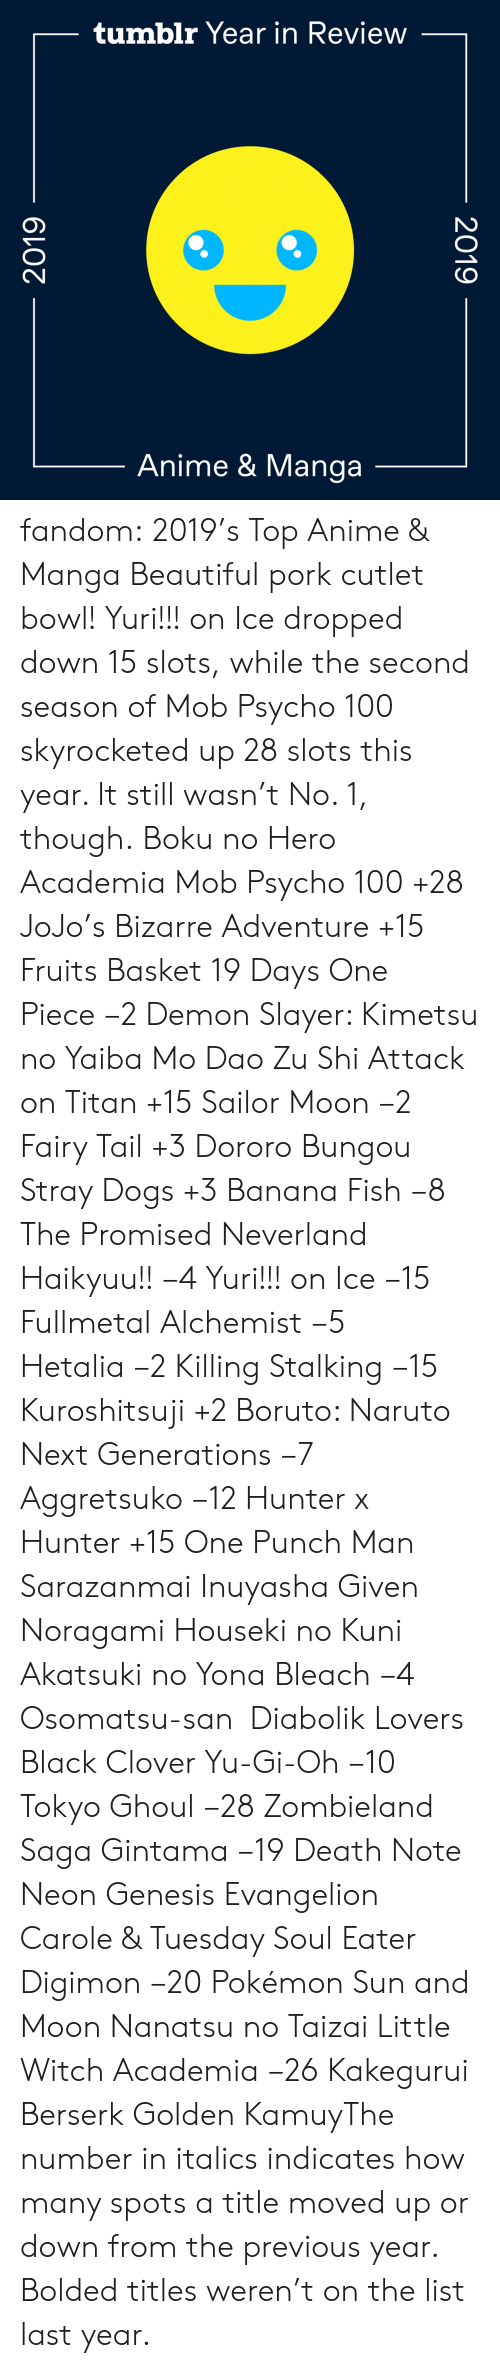 Generations: tumblr Year in Review  Anime & Manga  2019  2019 fandom:  2019's Top Anime & Manga  Beautiful pork cutlet bowl! Yuri!!! on Ice dropped down 15 slots, while the second season of Mob Psycho 100 skyrocketed up 28 slots this year. It still wasn't No. 1, though.  Boku no Hero Academia  Mob Psycho 100 +28  JoJo's Bizarre Adventure +15  Fruits Basket  19 Days  One Piece −2  Demon Slayer: Kimetsu no Yaiba  Mo Dao Zu Shi  Attack on Titan +15  Sailor Moon −2  Fairy Tail +3  Dororo  Bungou Stray Dogs +3  Banana Fish −8  The Promised Neverland  Haikyuu!! −4  Yuri!!! on Ice −15  Fullmetal Alchemist −5  Hetalia −2  Killing Stalking −15  Kuroshitsuji +2  Boruto: Naruto Next Generations −7  Aggretsuko −12  Hunter x Hunter +15  One Punch Man  Sarazanmai  Inuyasha  Given  Noragami  Houseki no Kuni  Akatsuki no Yona  Bleach −4  Osomatsu-san   Diabolik Lovers  Black Clover  Yu-Gi-Oh −10  Tokyo Ghoul −28  Zombieland Saga  Gintama −19  Death Note  Neon Genesis Evangelion  Carole & Tuesday  Soul Eater  Digimon −20  Pokémon Sun and Moon  Nanatsu no Taizai  Little Witch Academia −26  Kakegurui  Berserk Golden KamuyThe number in italics indicates how many spots a title moved up or down from the previous year. Bolded titles weren't on the list last year.